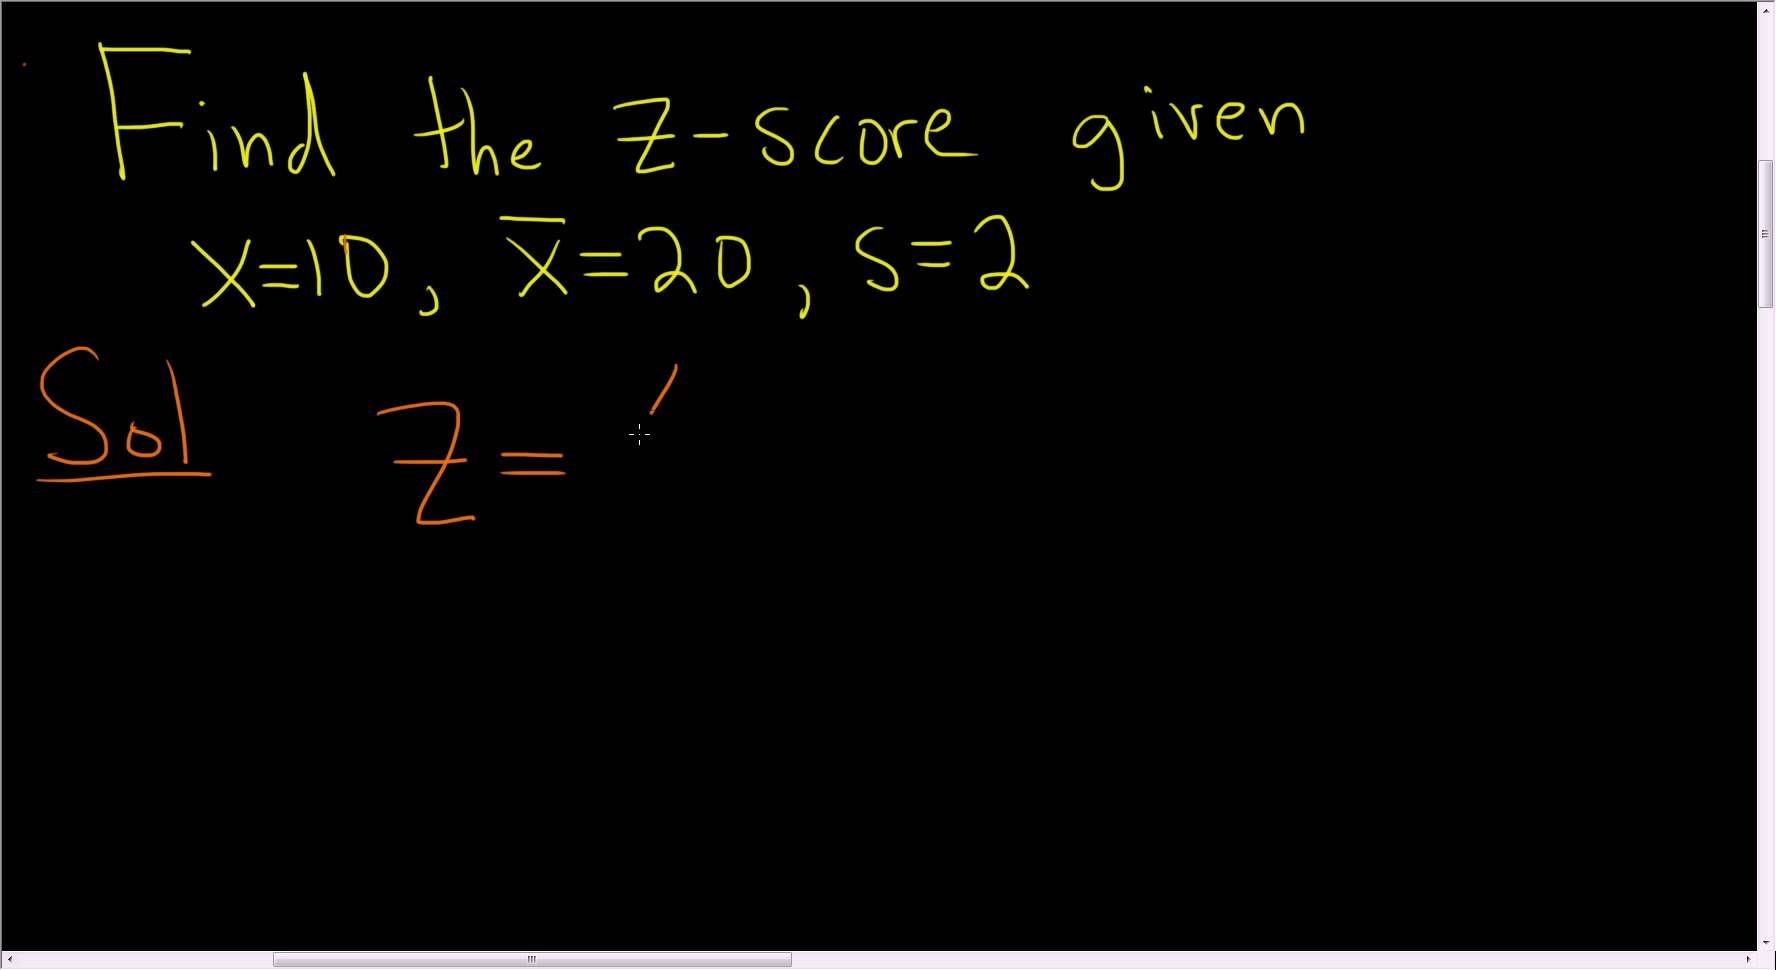 Finding The Z Score Of X With The Formula